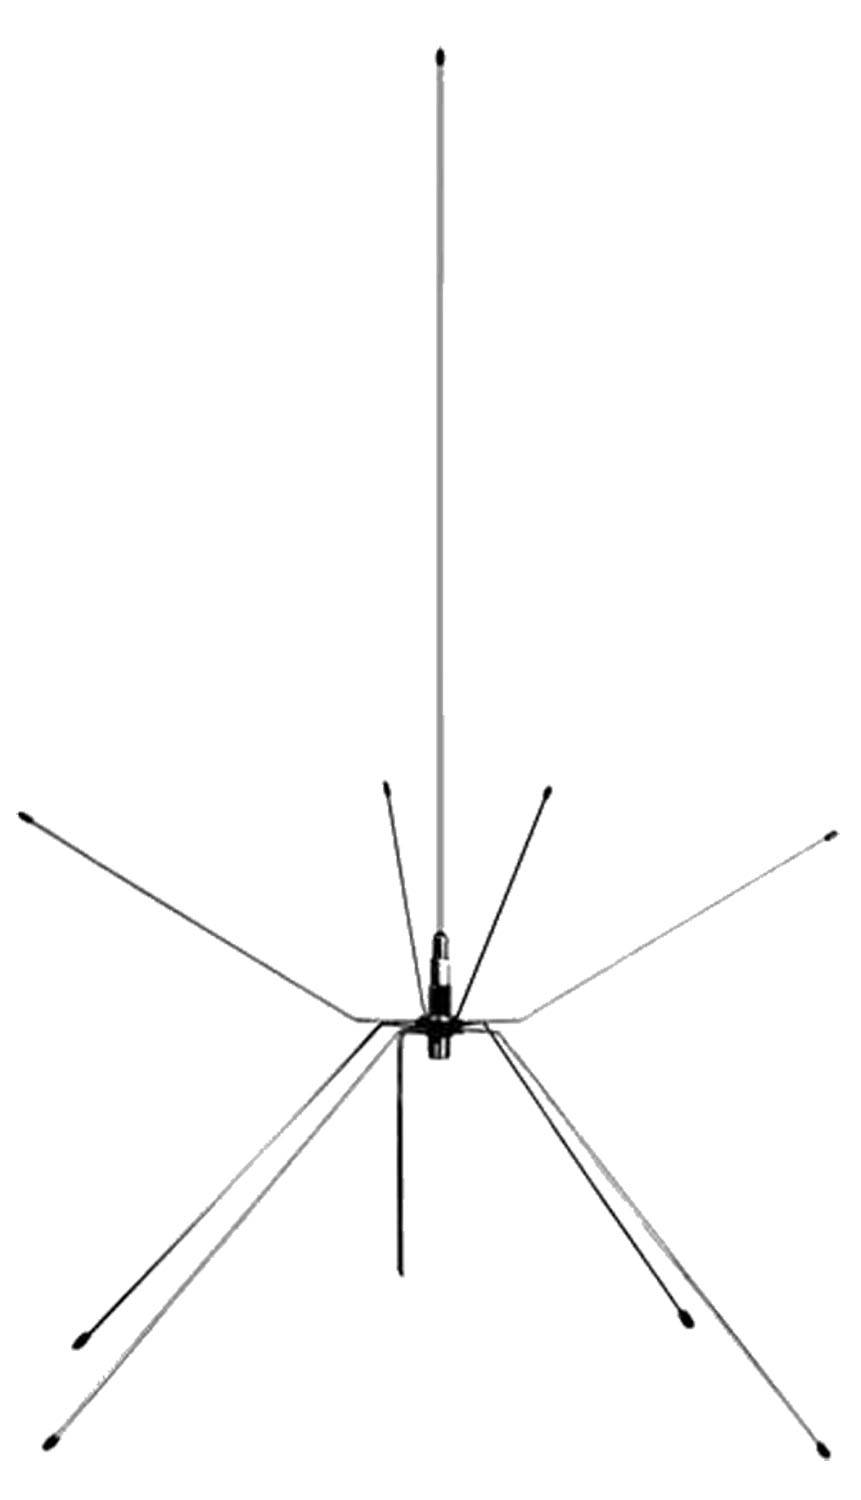 SPIDER - ProComm Base Station Scanner Antenna